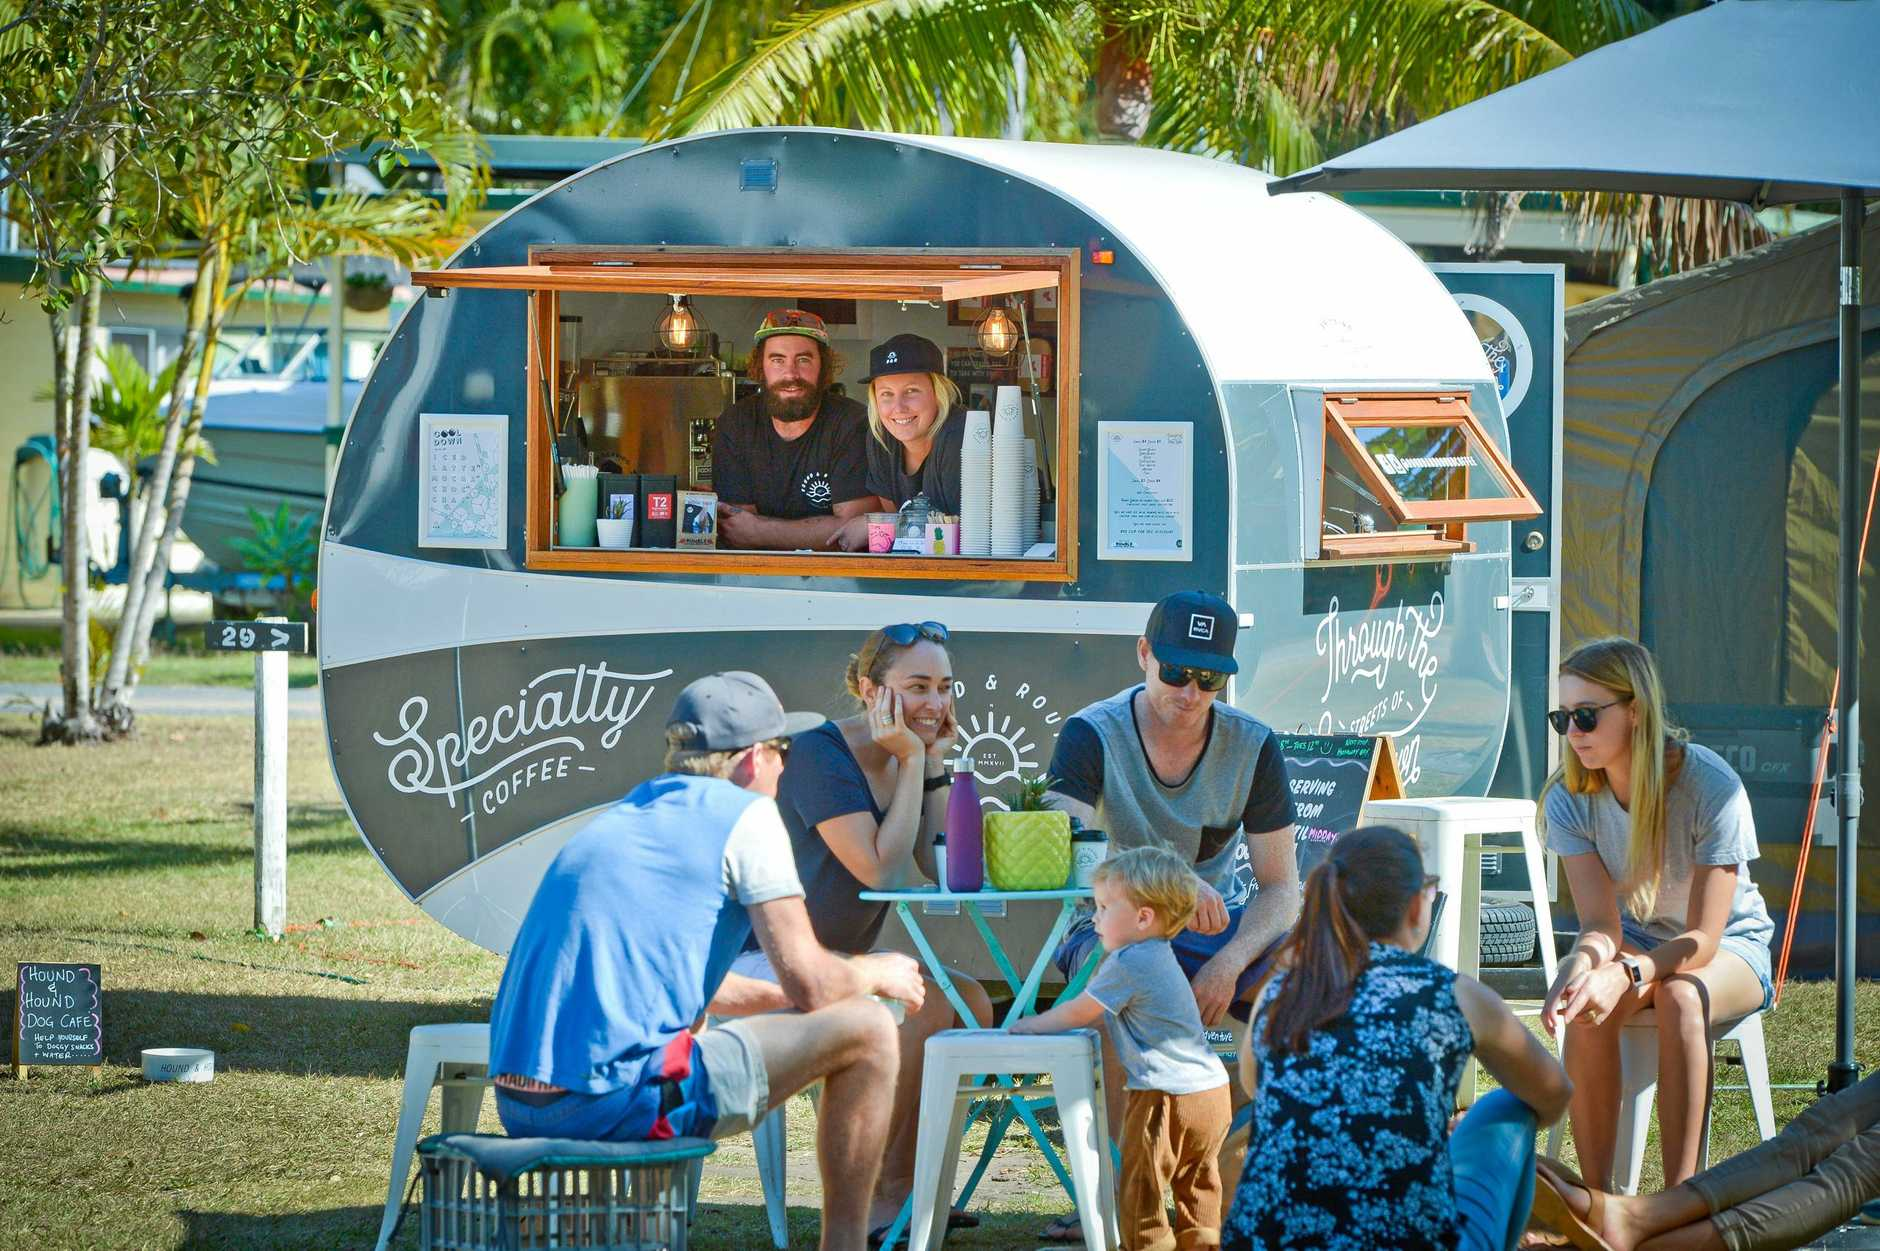 Andy Hoffman and Jess Davidson are using their cute little coffee van